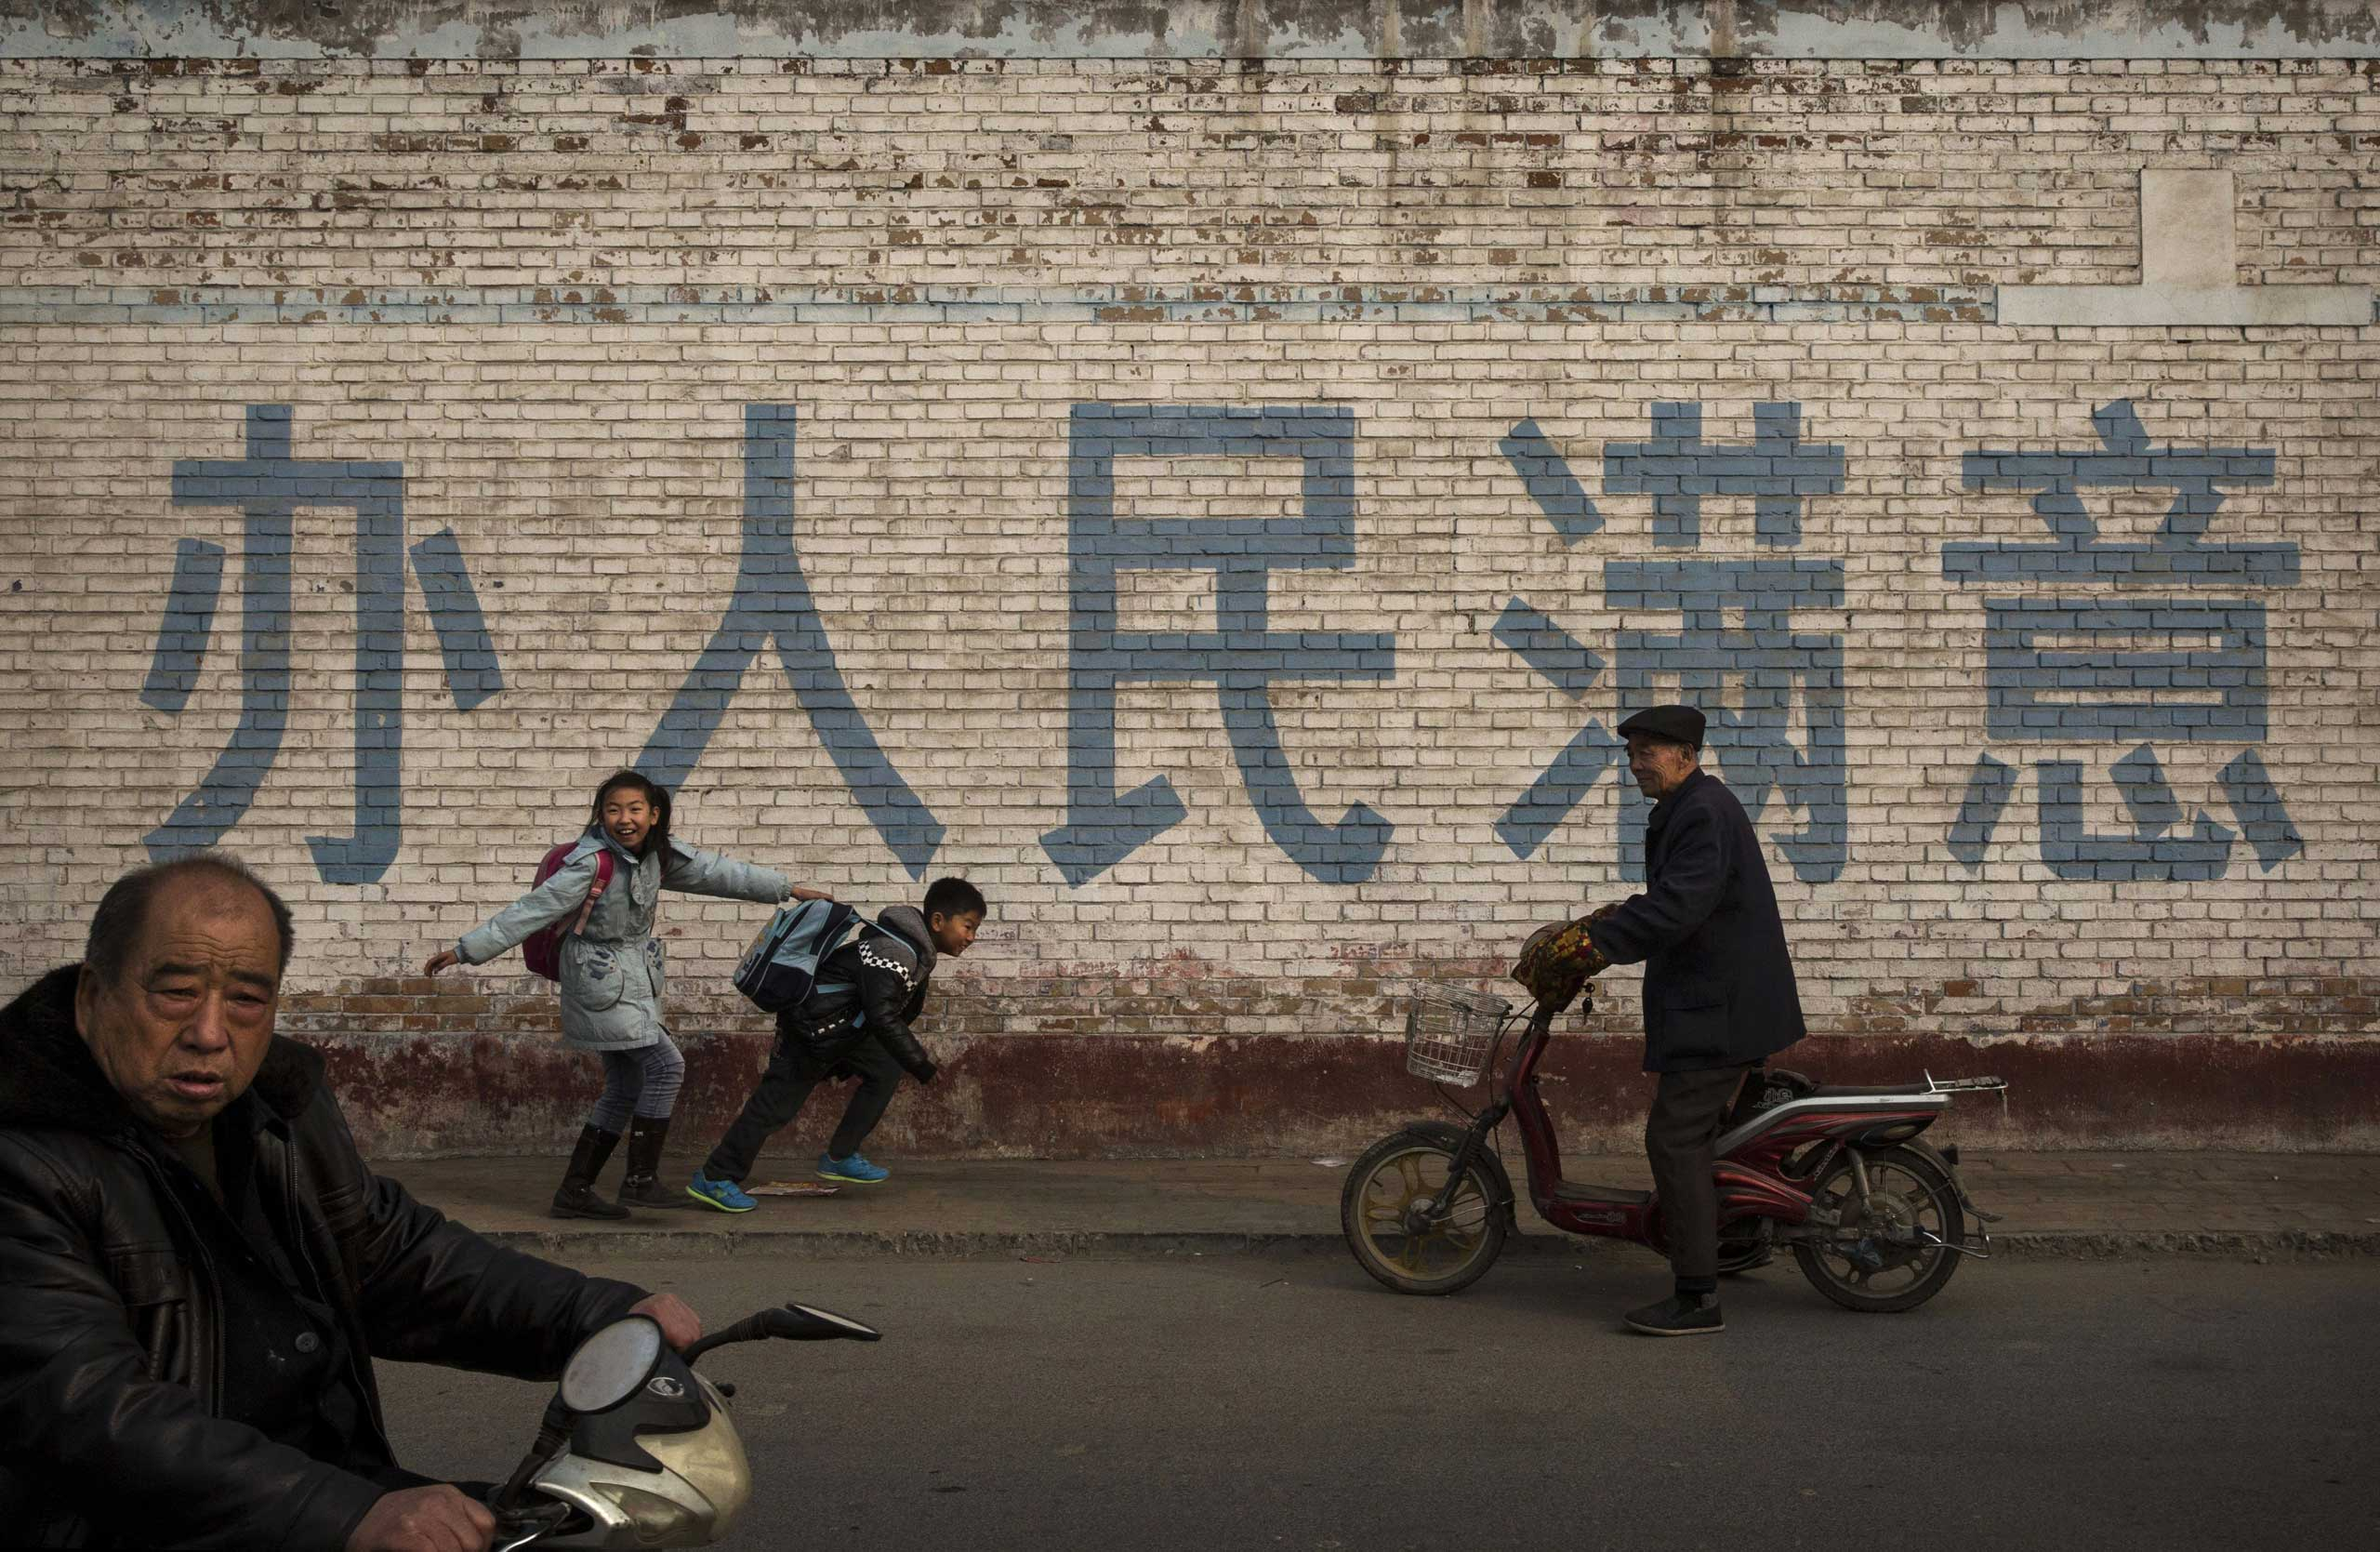 Nov. 21, 2014. Students joke with each other as they walk to school in Heibei province, China. Located near Beijing, the province is considered one of the main industrial centers in China.